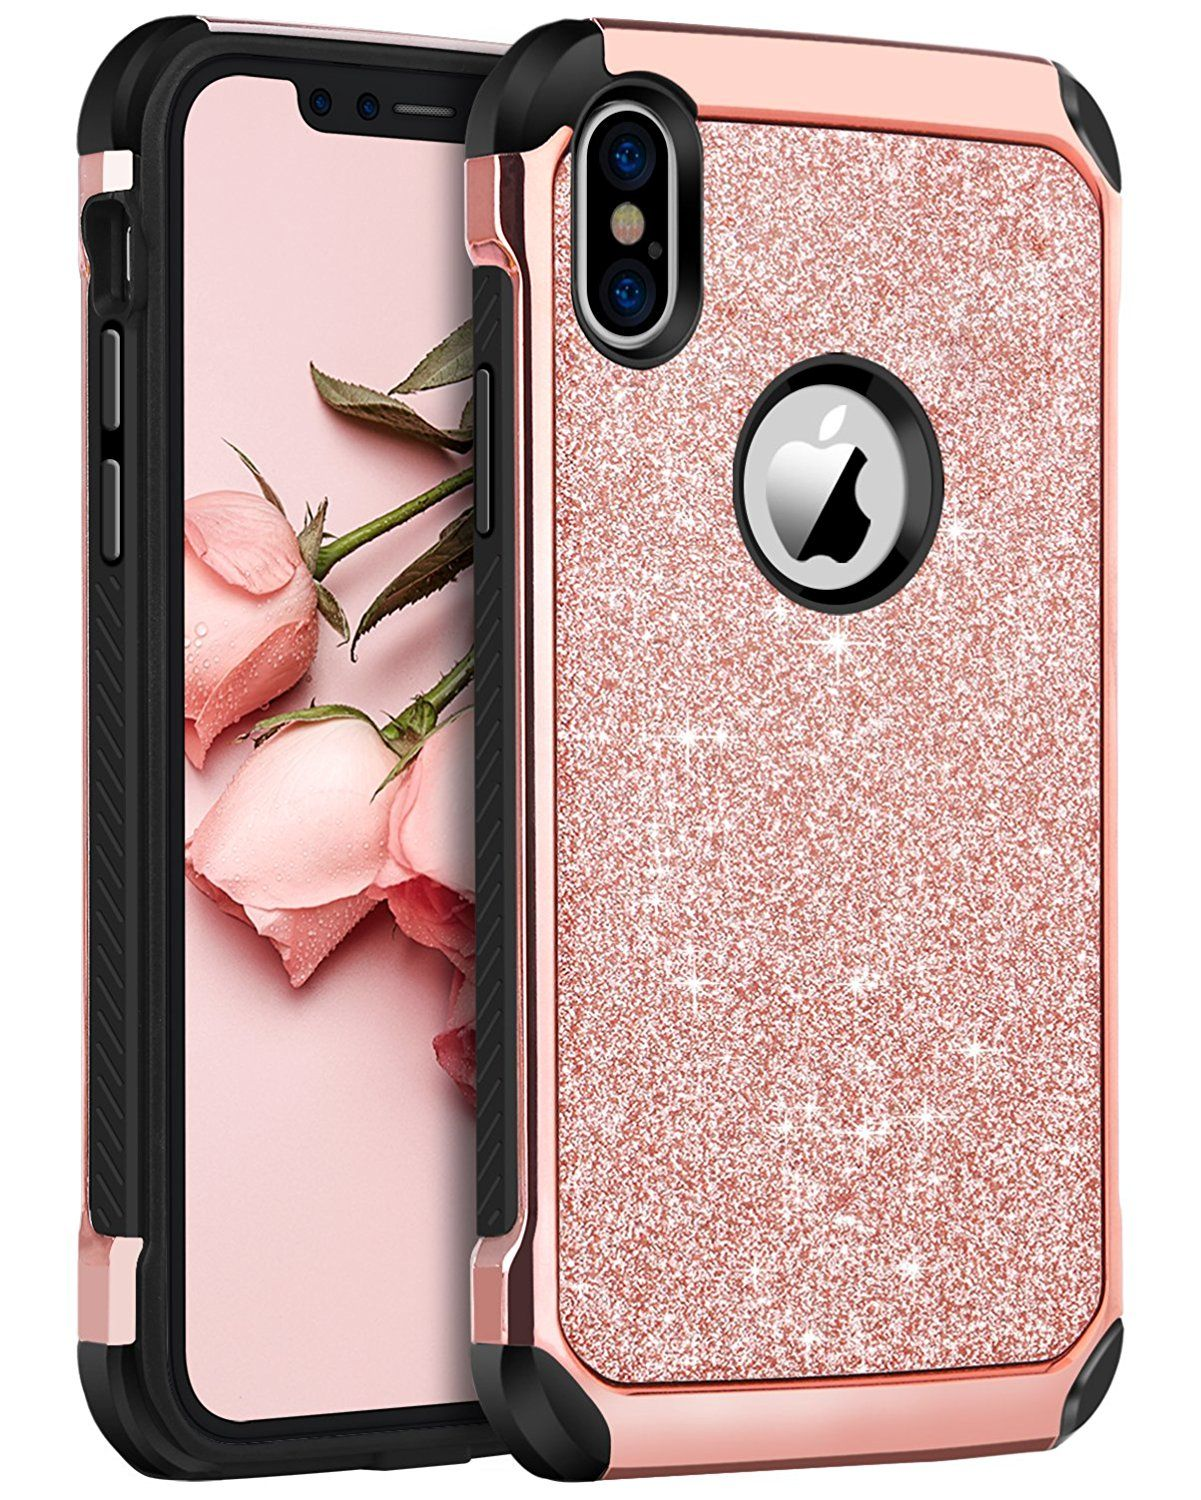 Iphone X Case Iphone 10 Case Bentoben Shockproof Glitter Sparkle Bling 2 In 1 Laminated With Shiny Glitter Iphone Case Sparkle Phone Case Sparkly Iphone Case